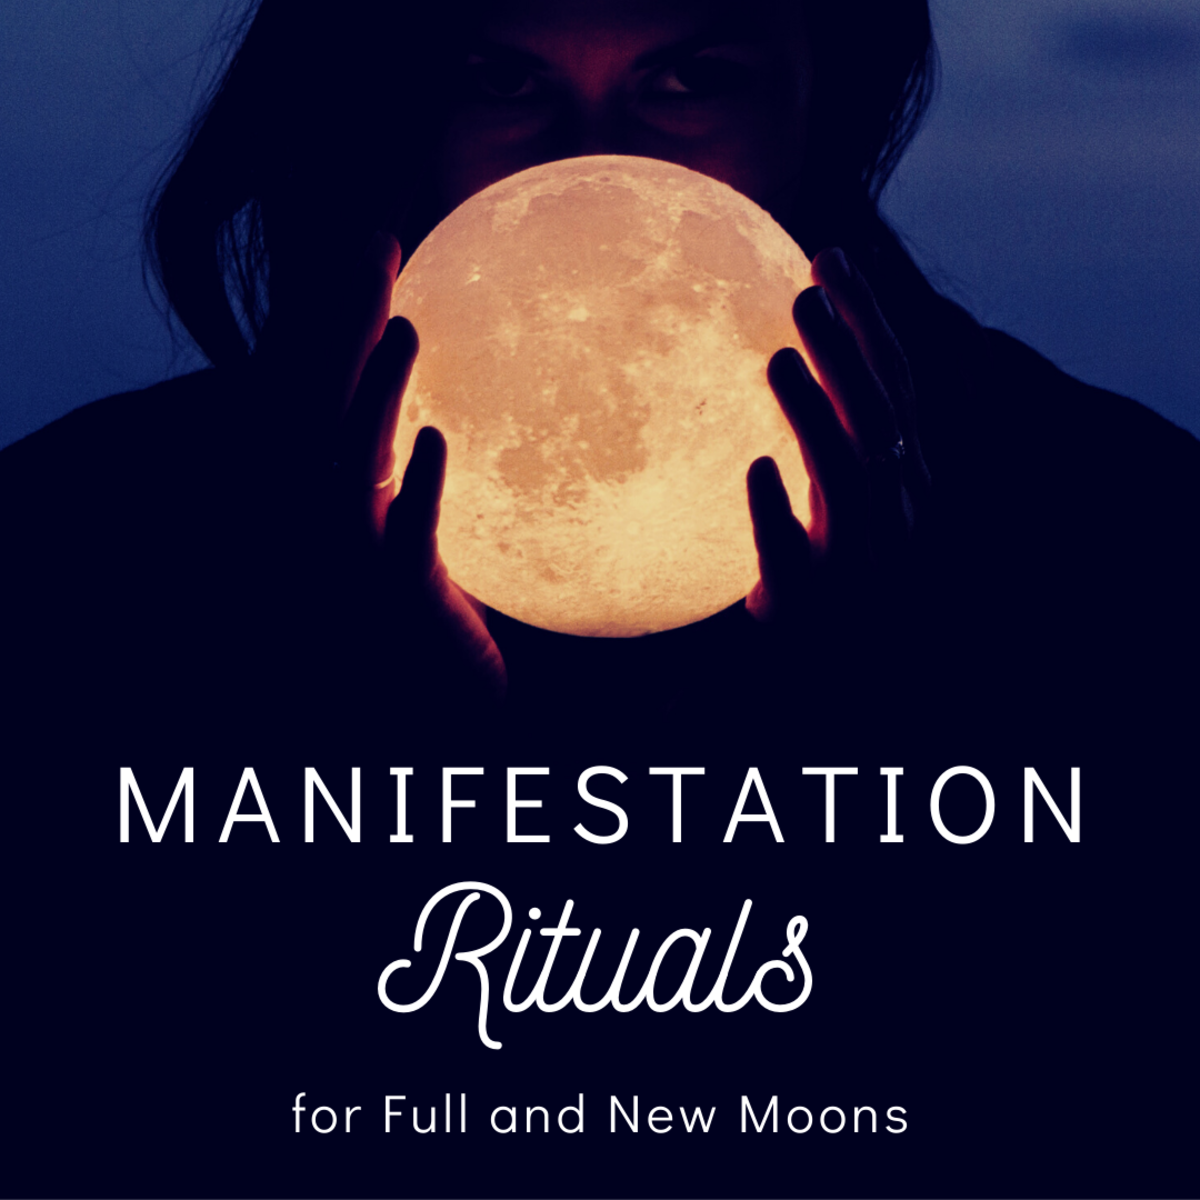 How to Manifest With the Moon Phases